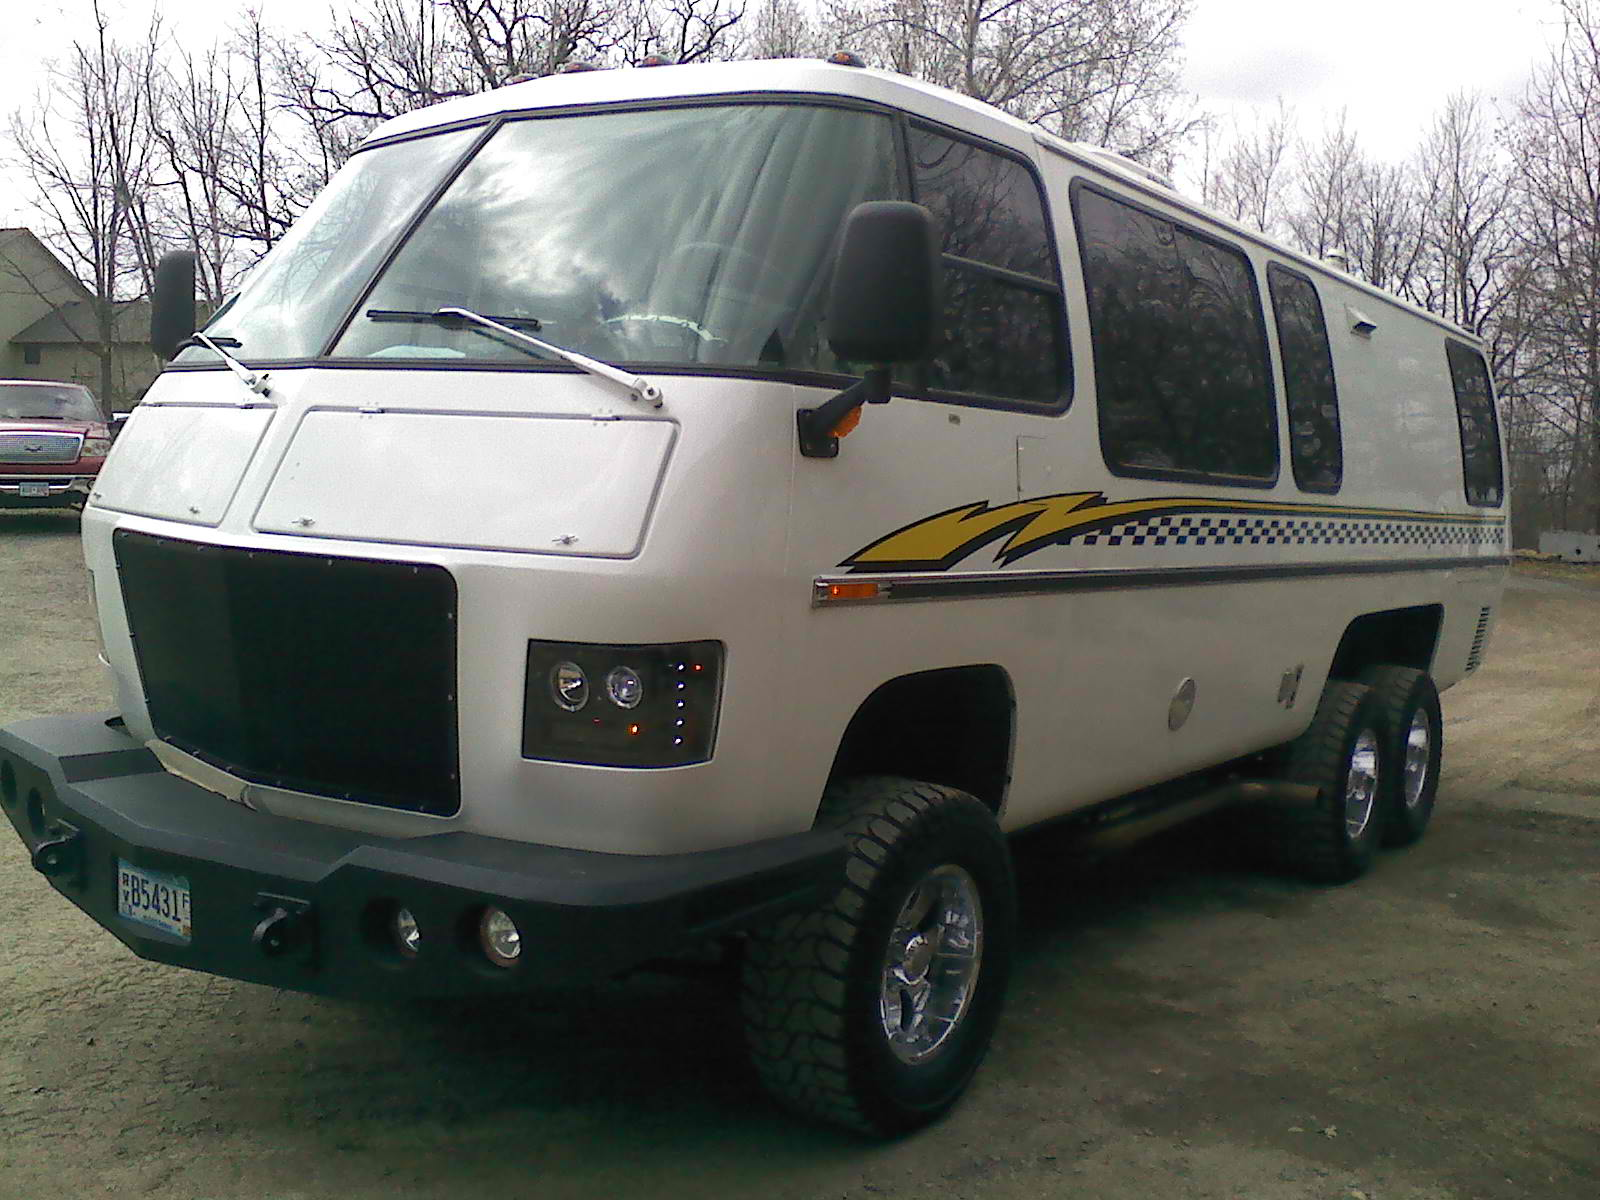 Wonderful 1976 GMC Motorhome Auction Photo Gallery  Autoblog